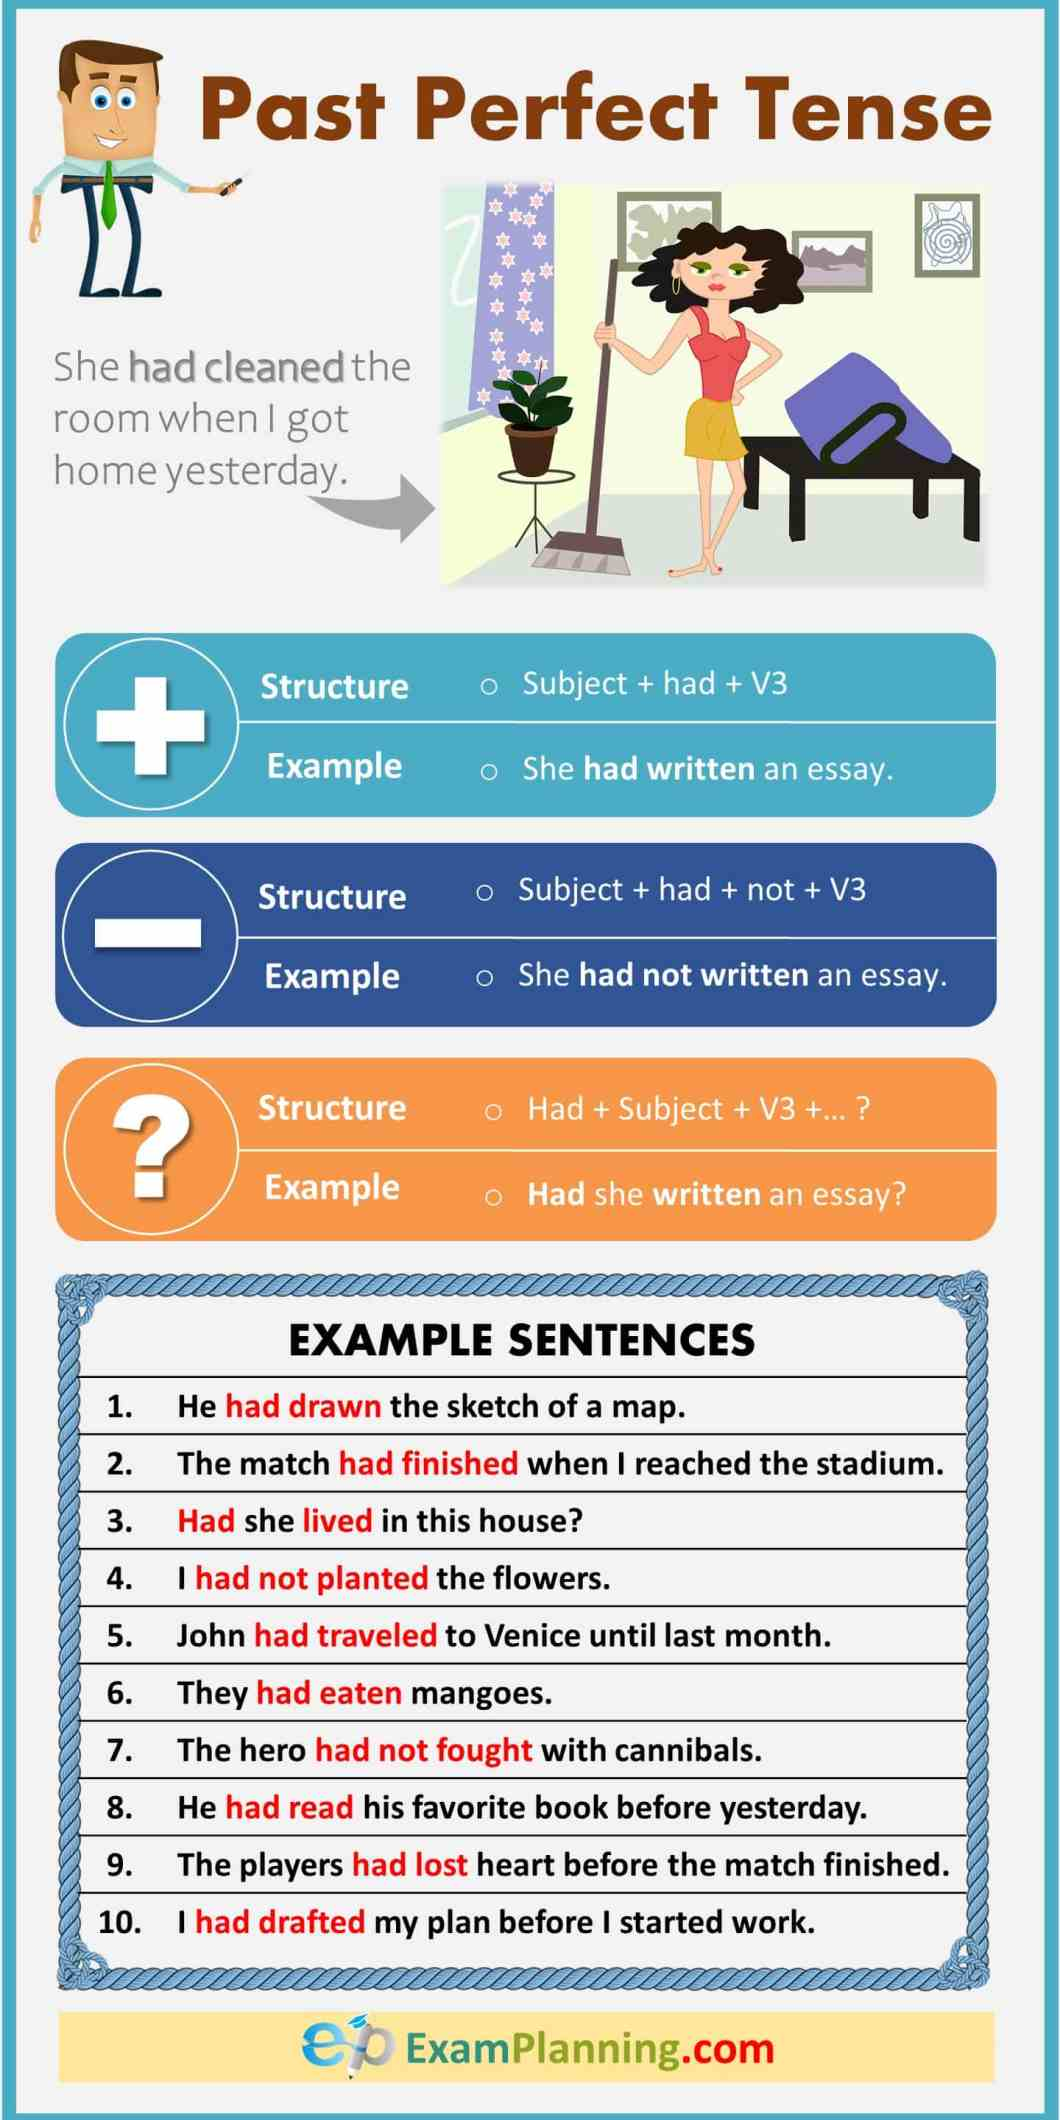 Past perfect tense formula, example and exercises